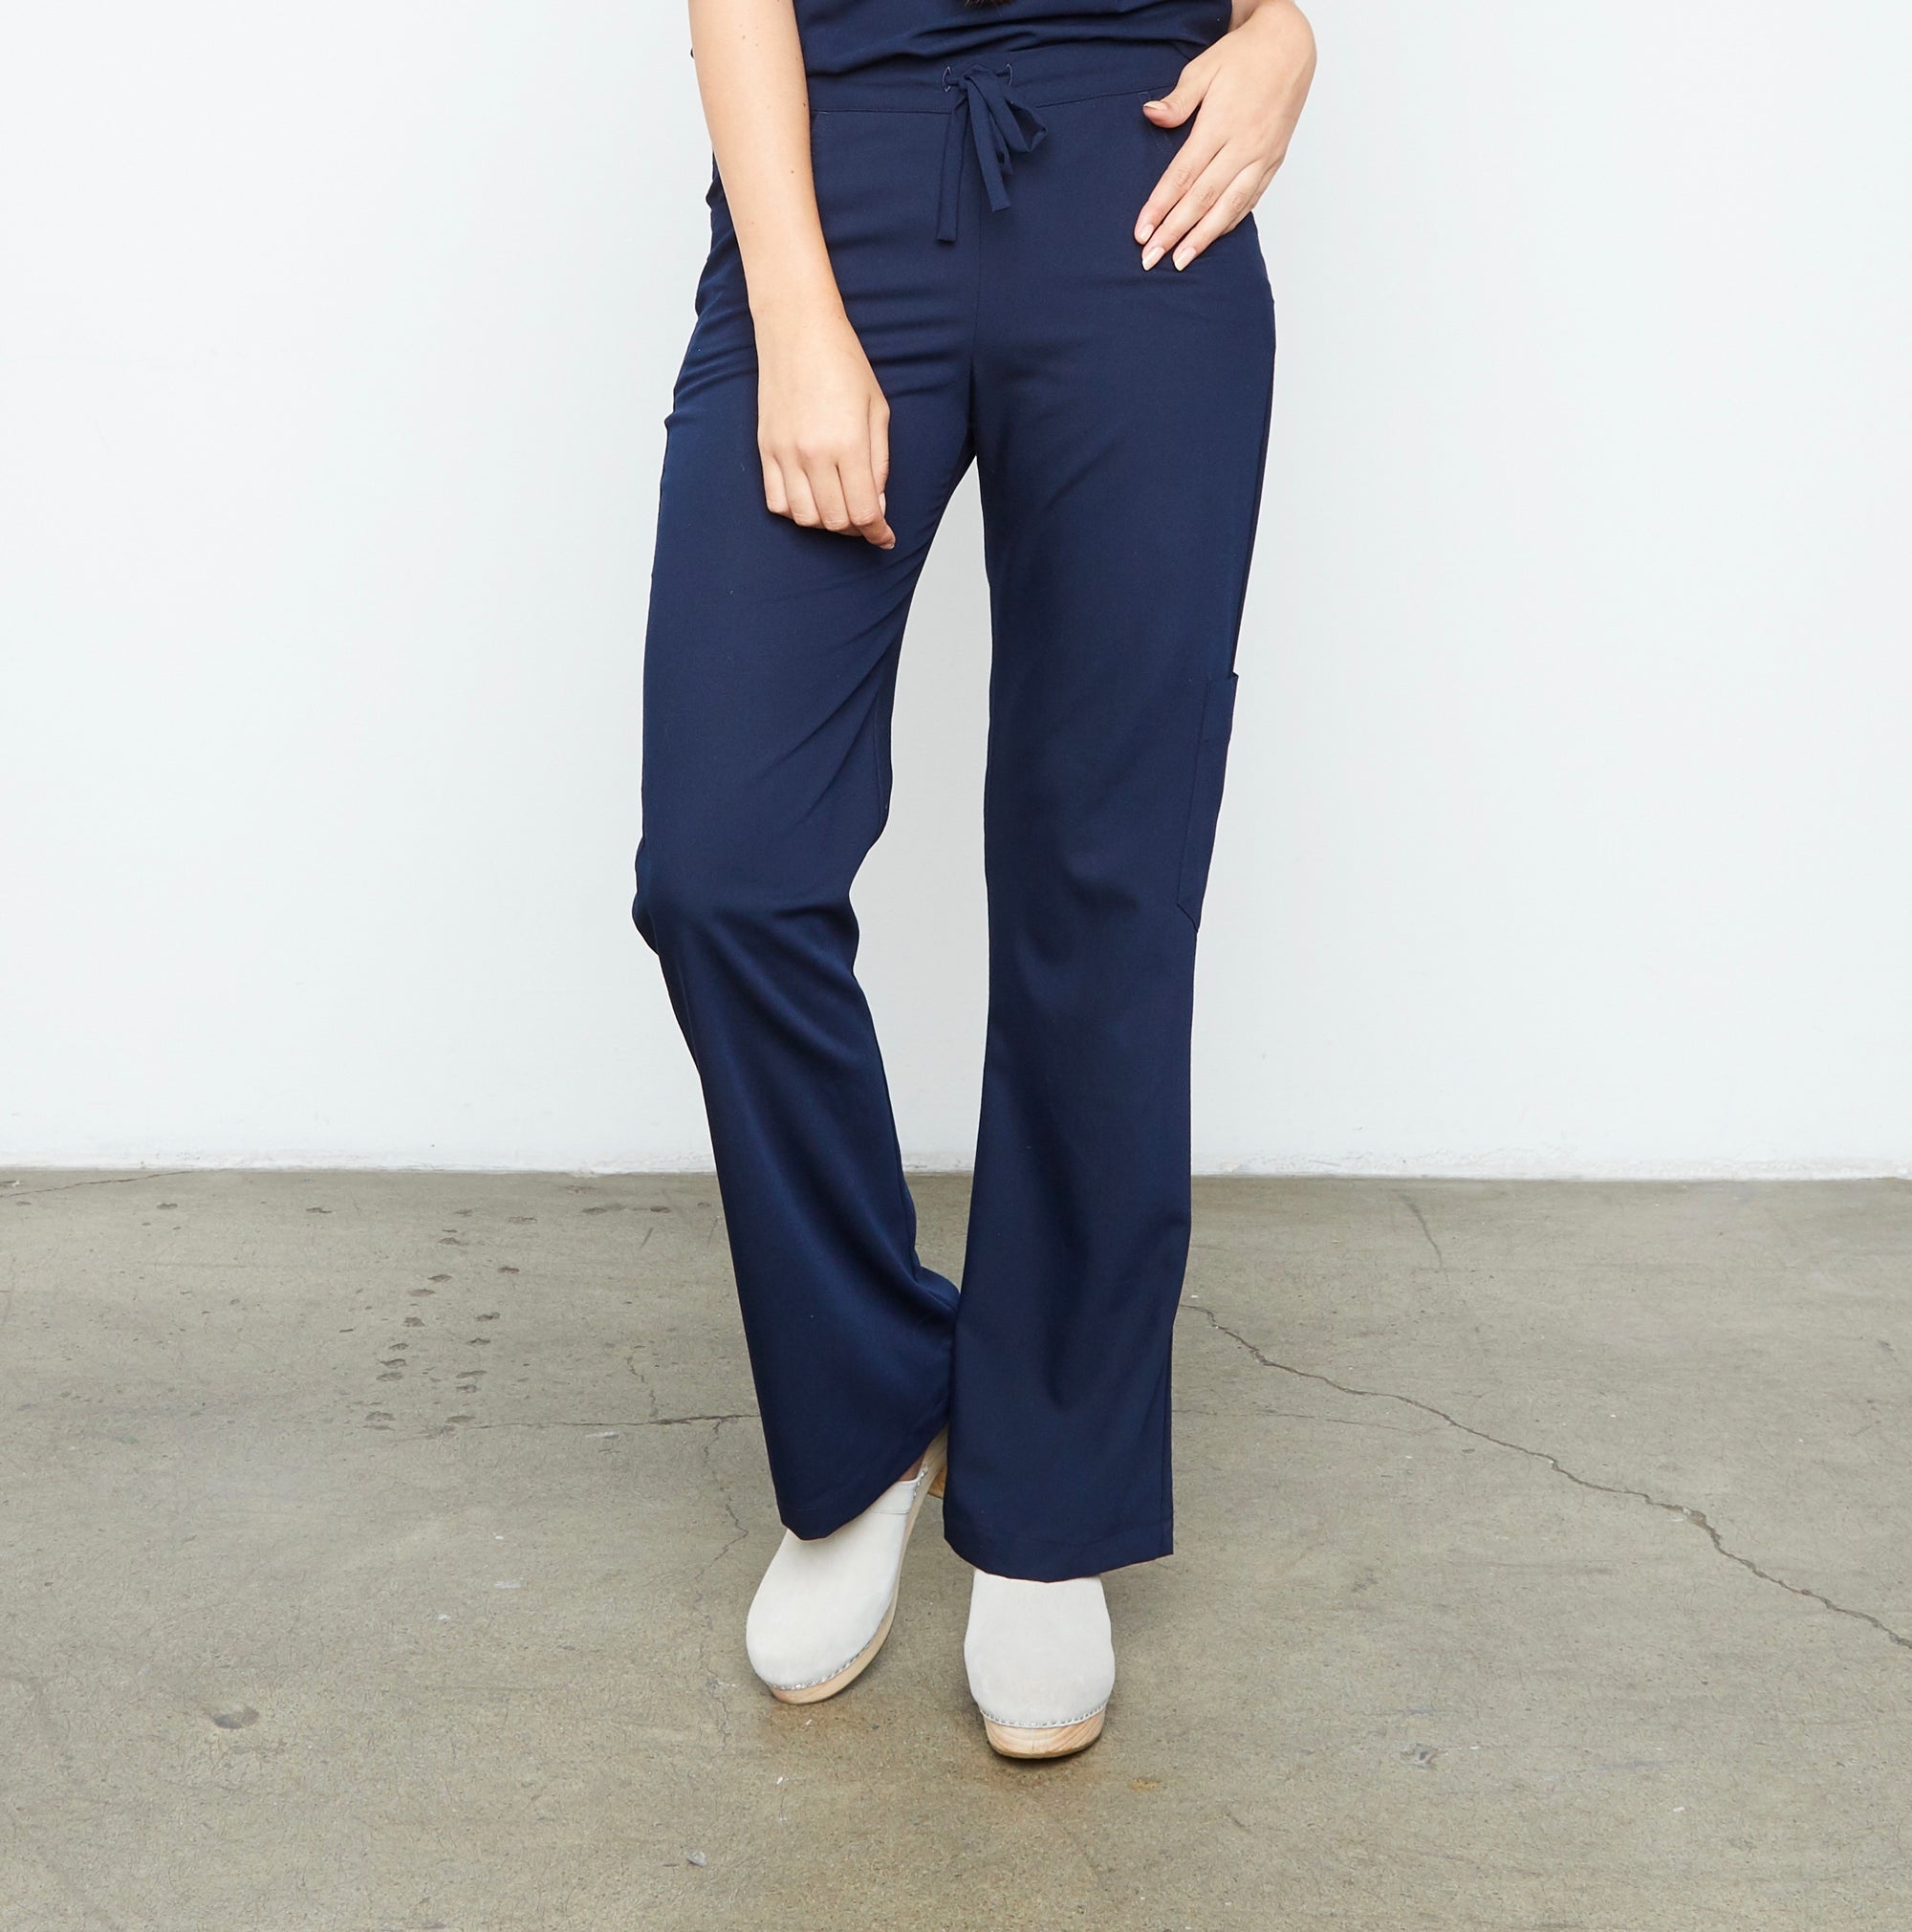 Maverick Pant - Tall (Really Dark Navy) XXS | Fabled makes beautiful high quality scrub pants for women. Scrubs fashion for women doctors and female medical workers.